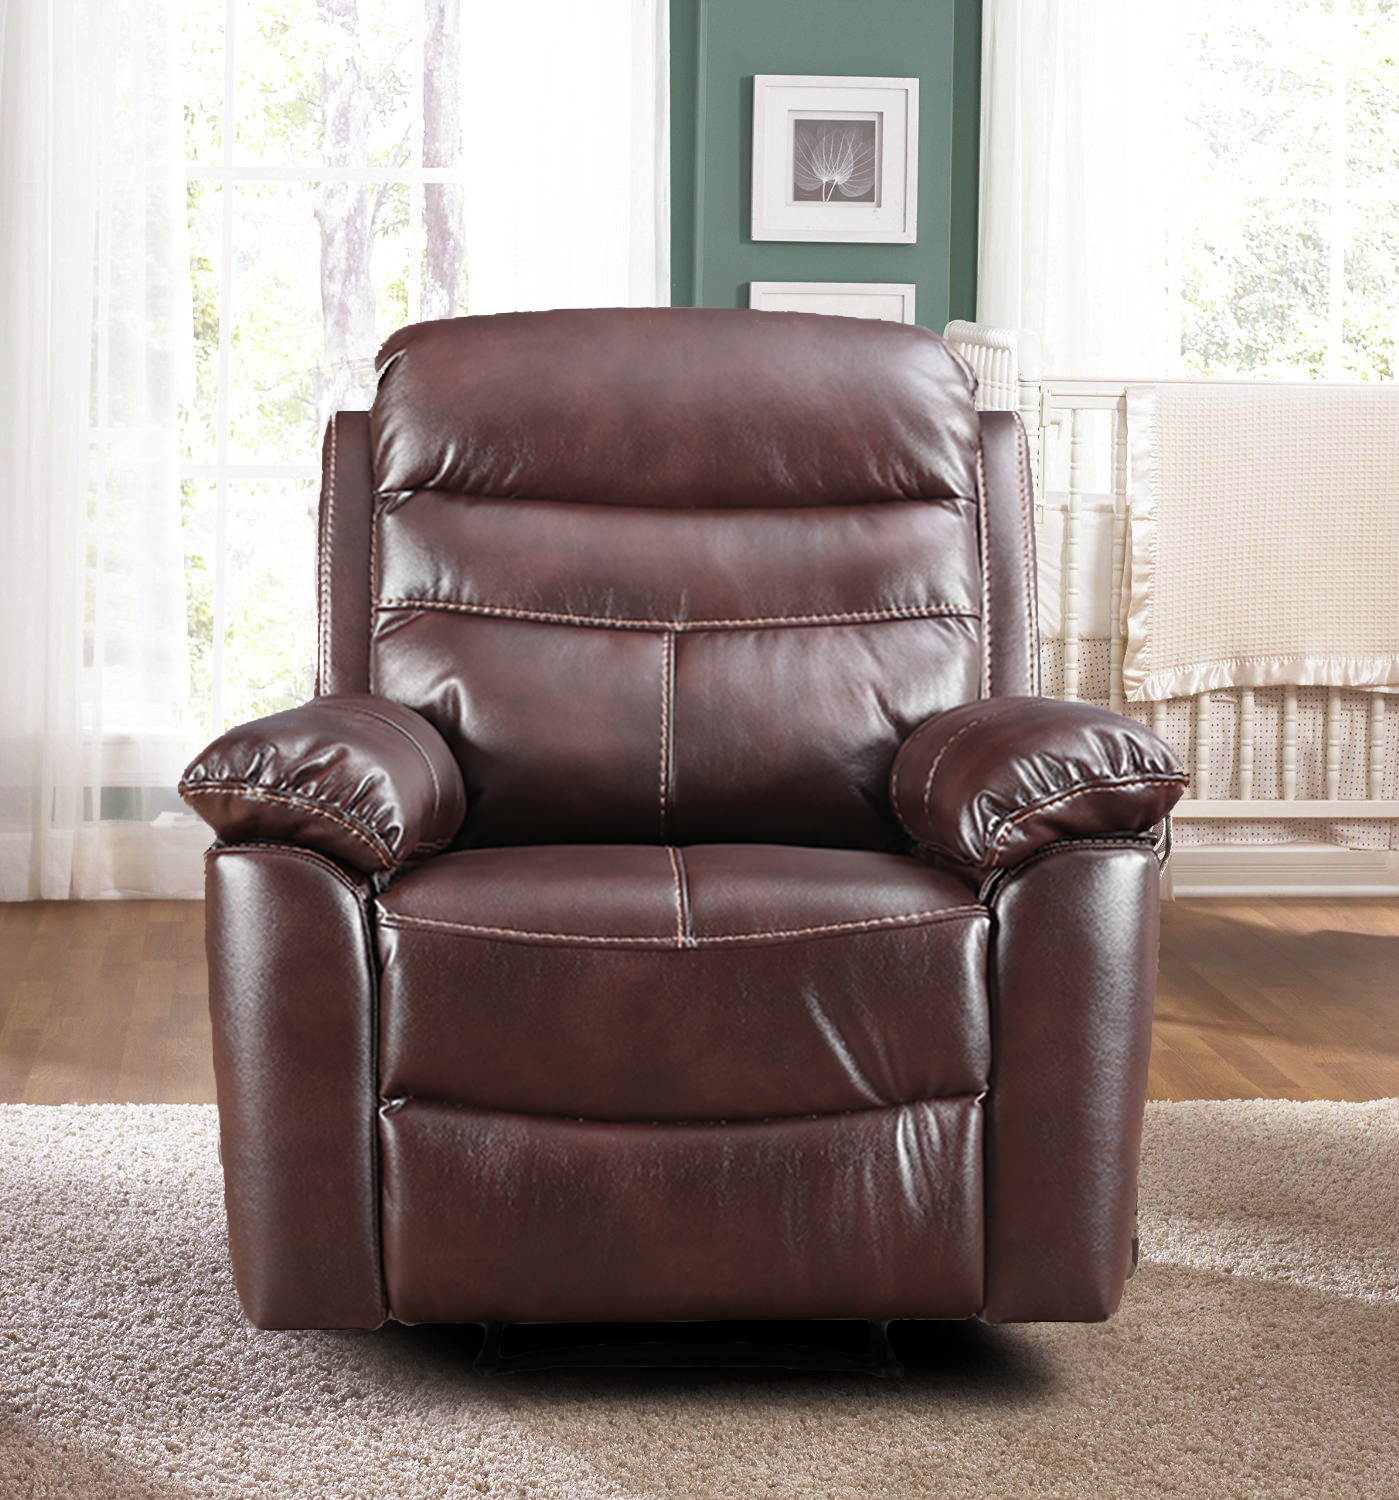 Logan Leather Fabric Single Seater Recliner in Dark Brown Colour by HomeTown